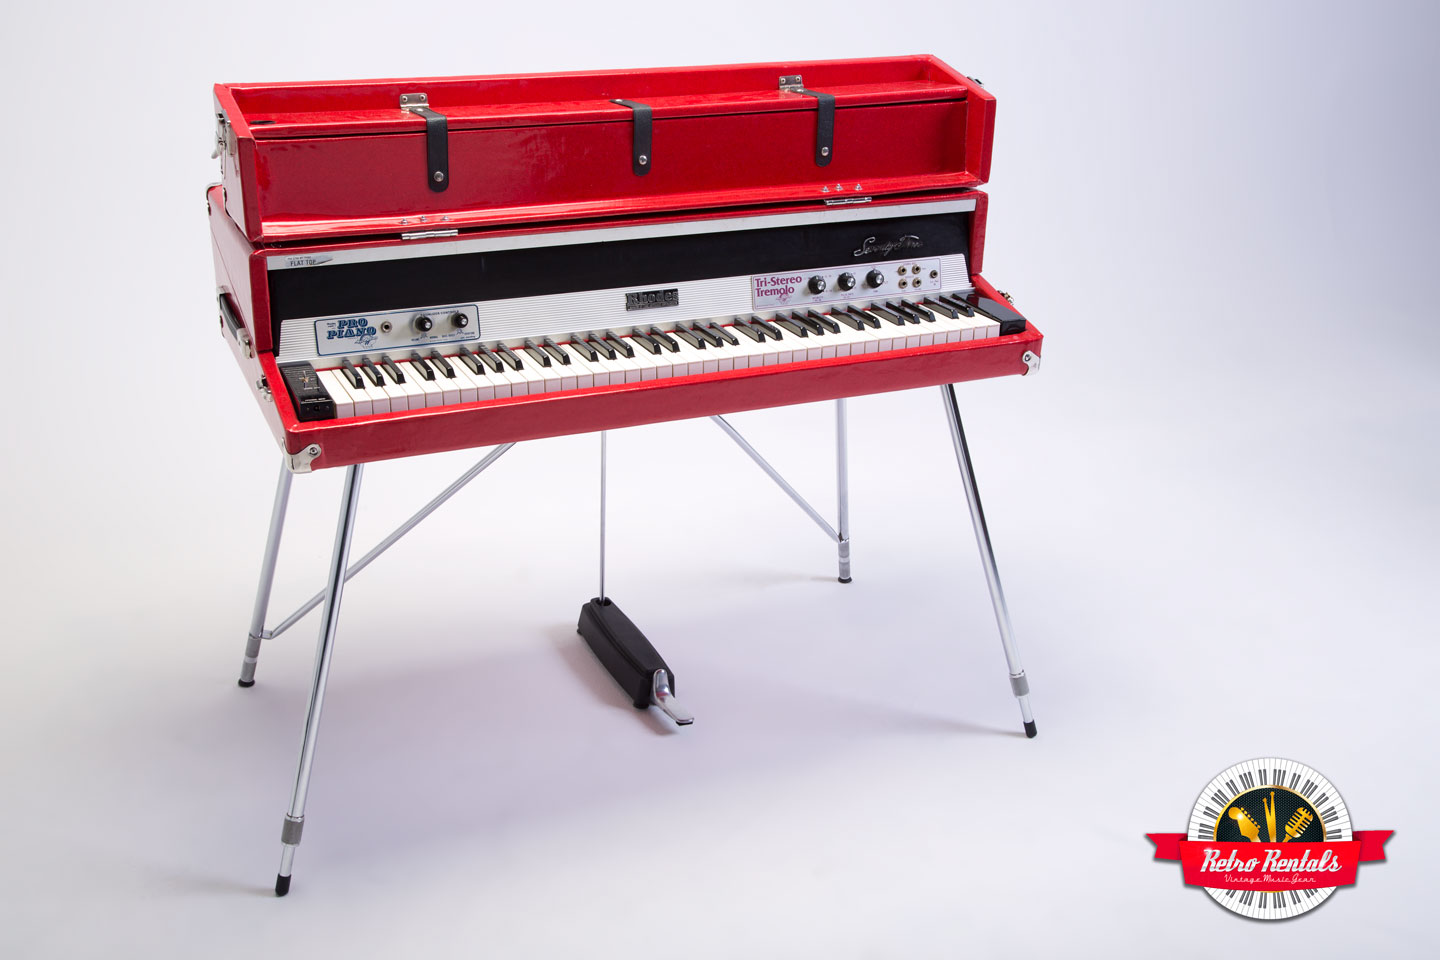 1979 fender rhodes stage 73 key dyno my piano retro rentals. Black Bedroom Furniture Sets. Home Design Ideas